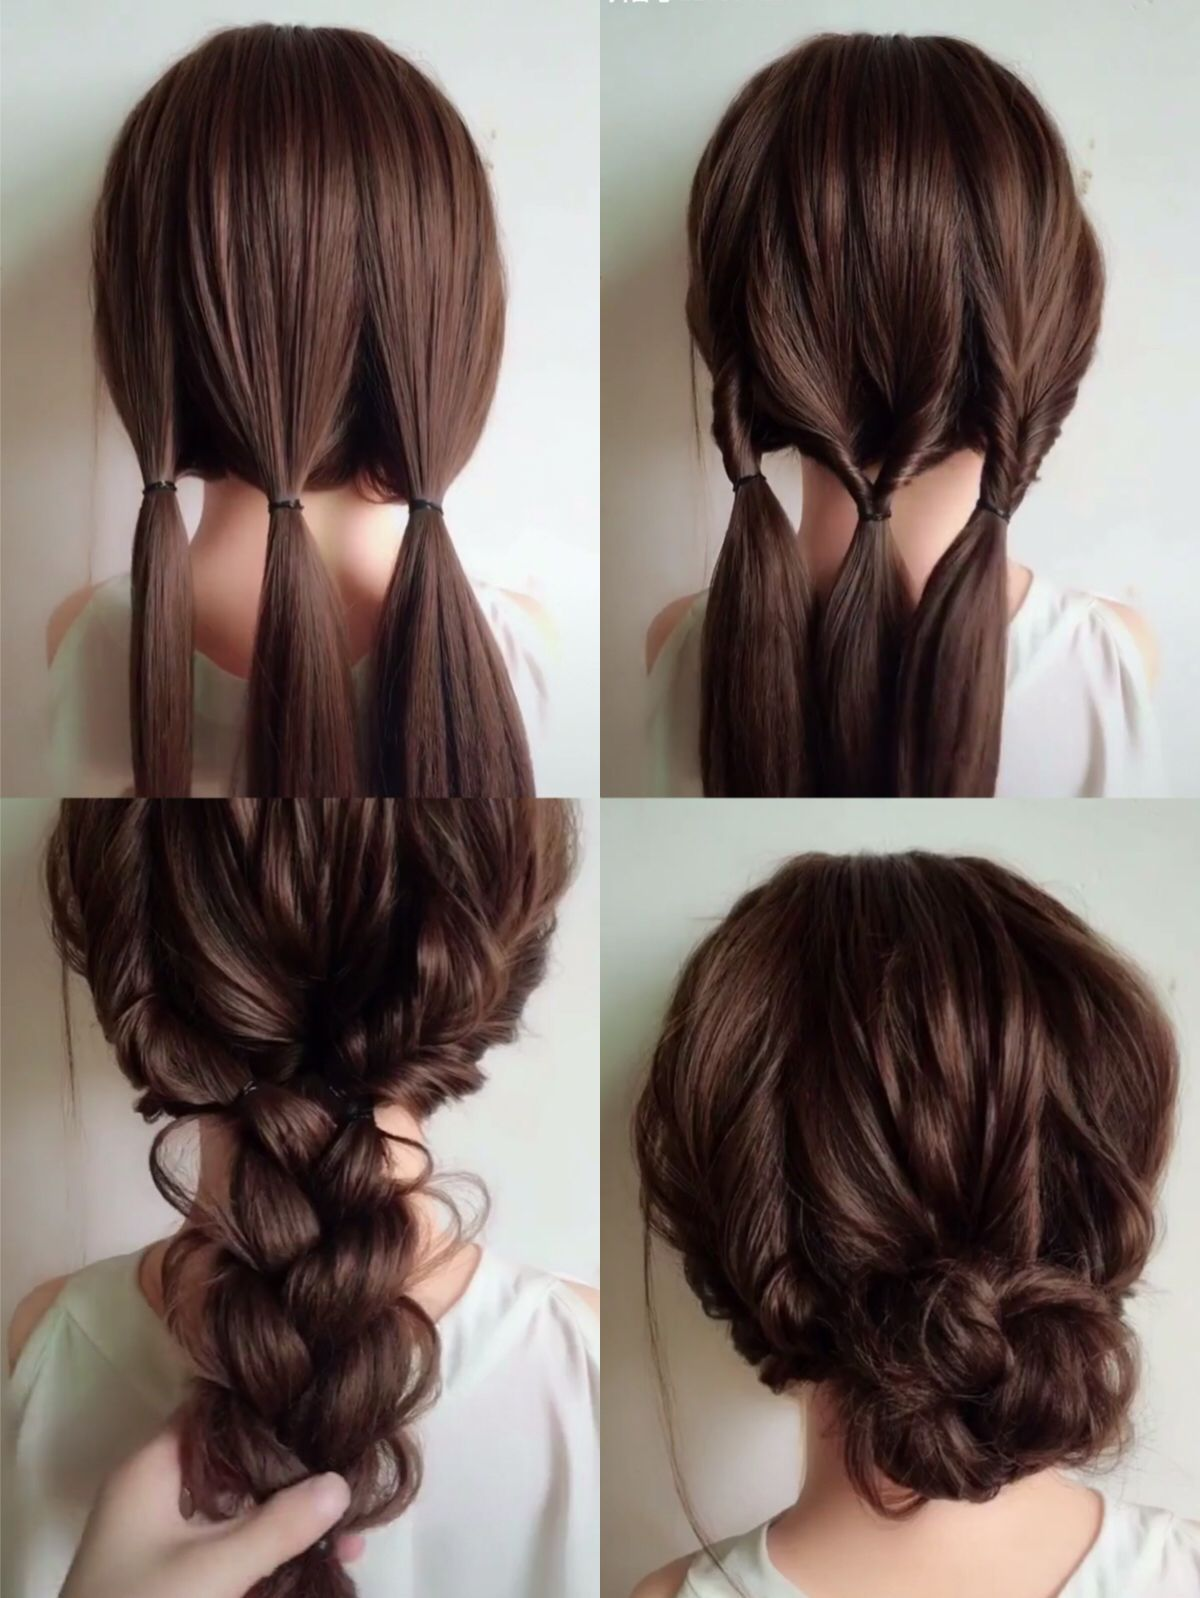 #braided hairstyles nigerian #braided hairstyles with beads #braided hairstyles videos youtube #braided hairstyles toddlers #braided hairstyles 2020 #braided hairstyles long hair wedding #how to updo braided hairstyles #braided hairstyles updo black